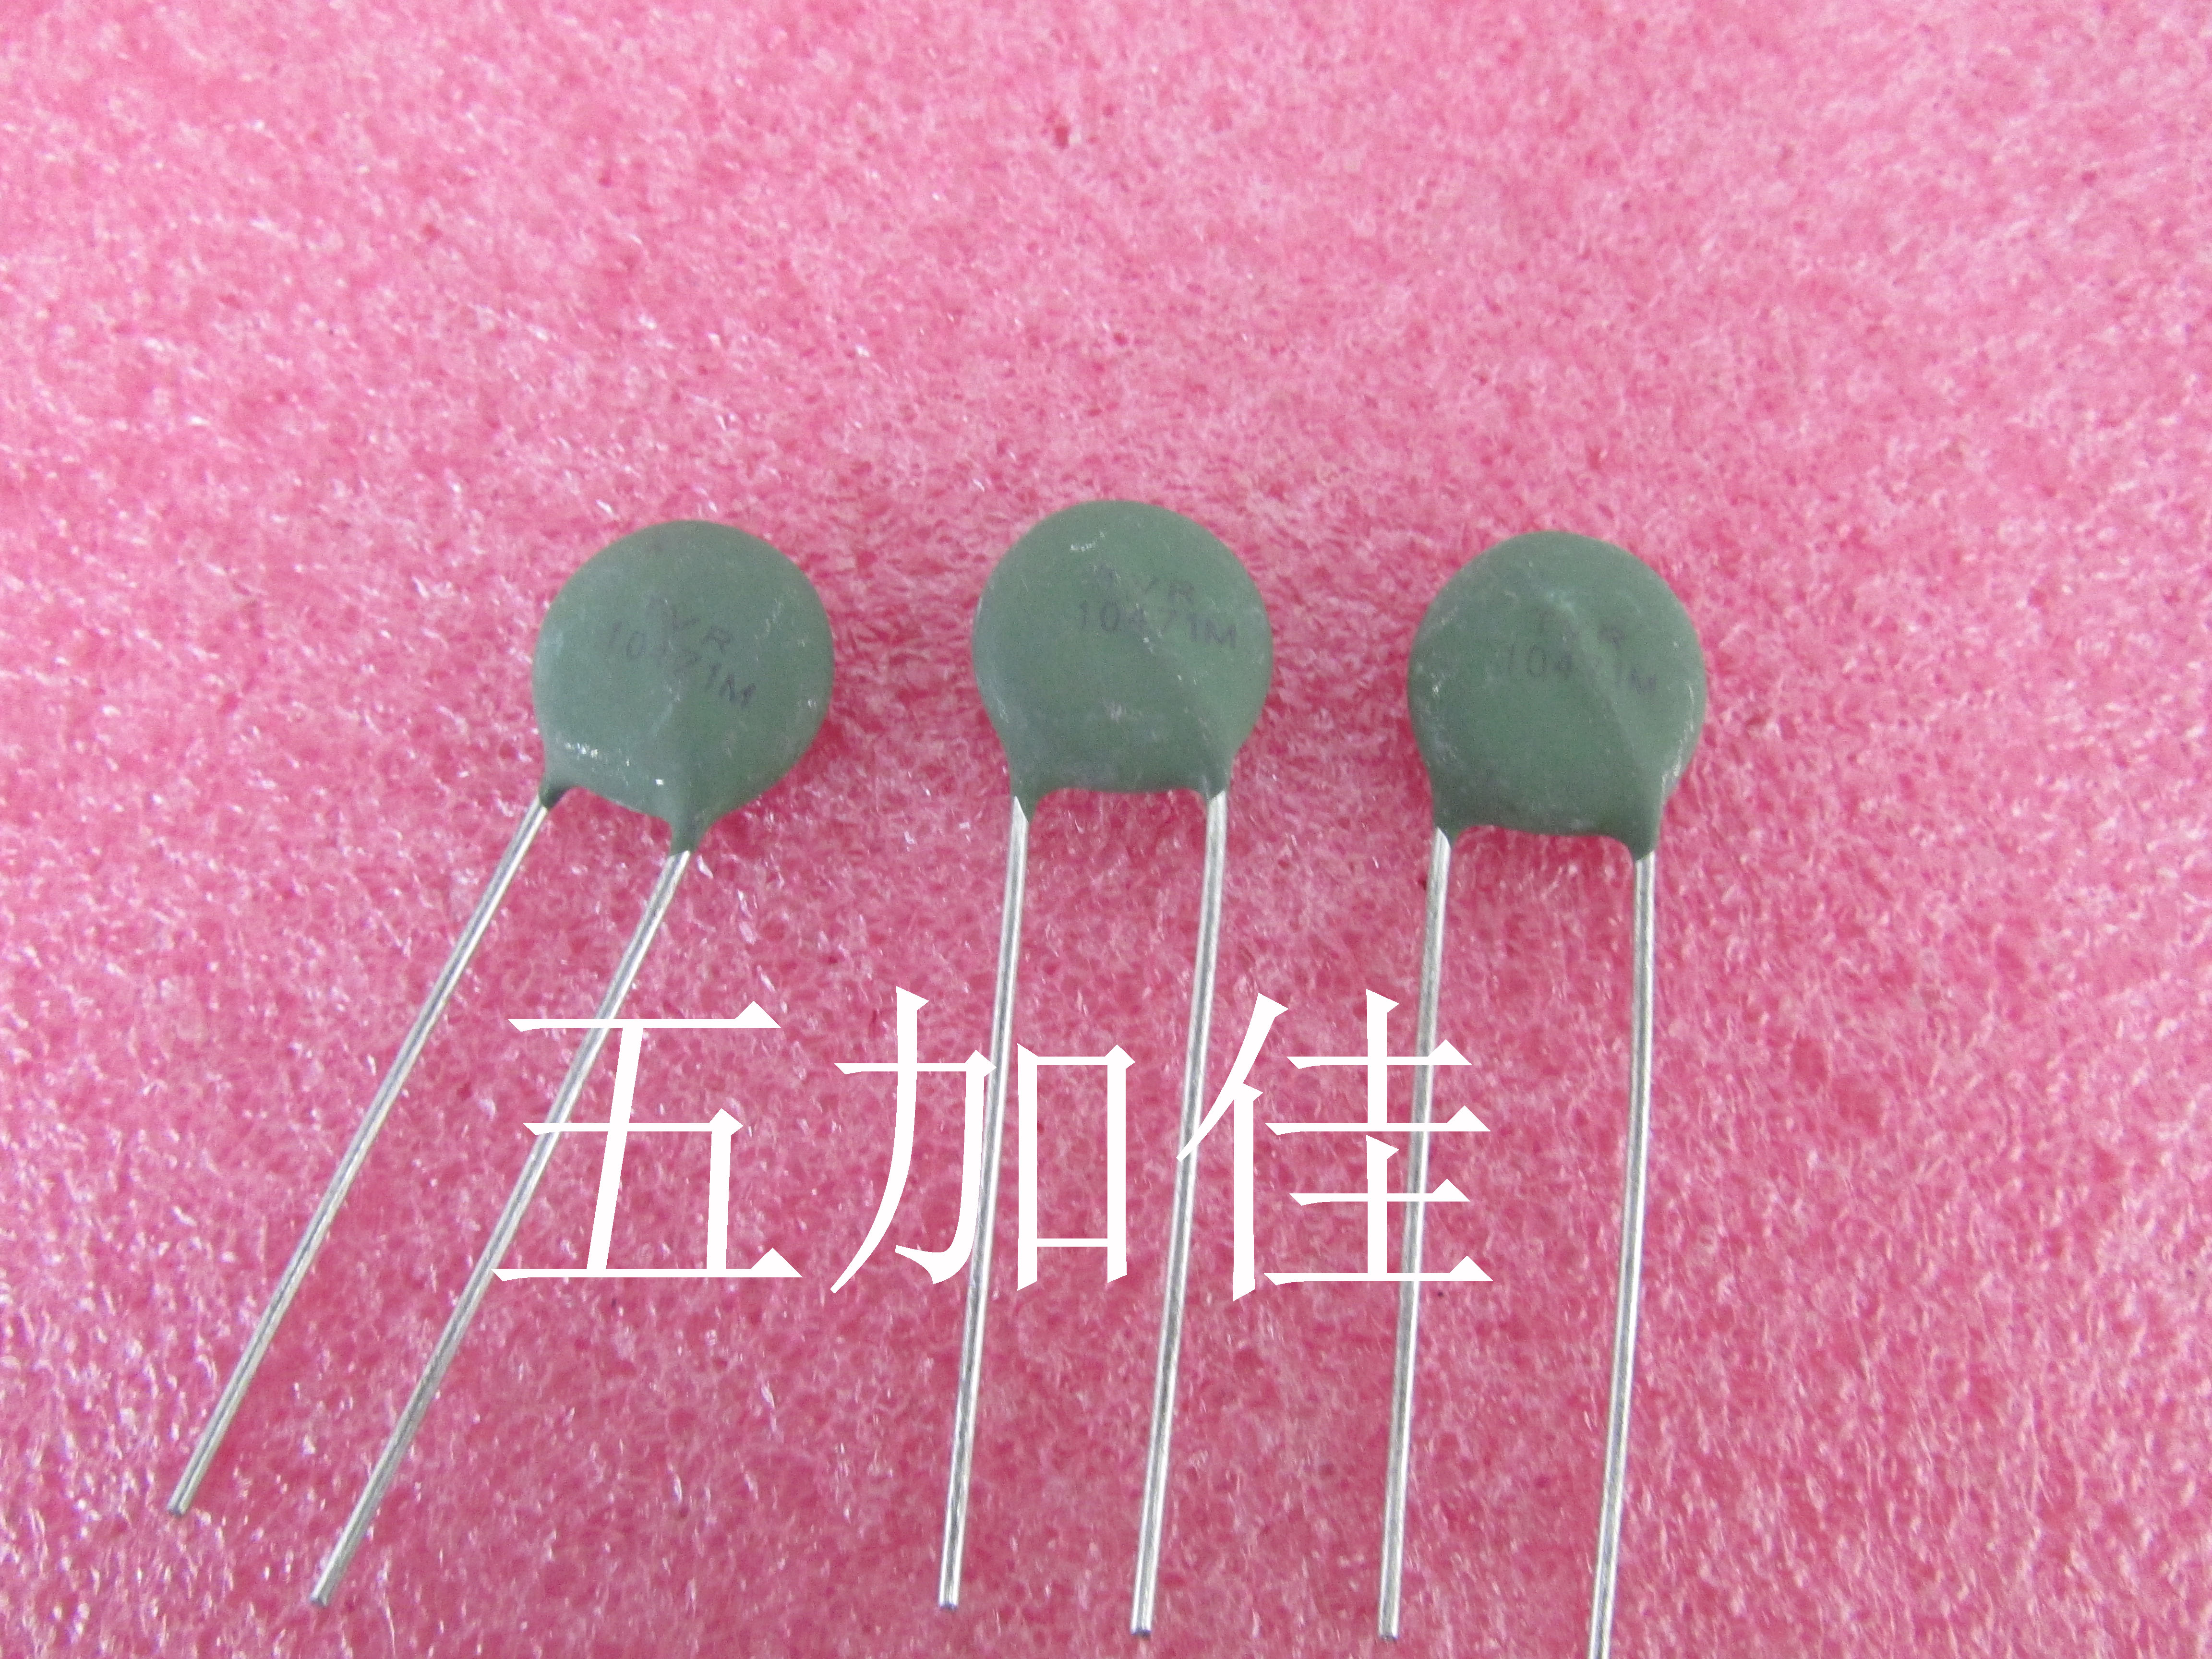 TVR 10471M TVR 10471KLM 470V 125 degree import  varistor   resistance  green high temperature 12 cm